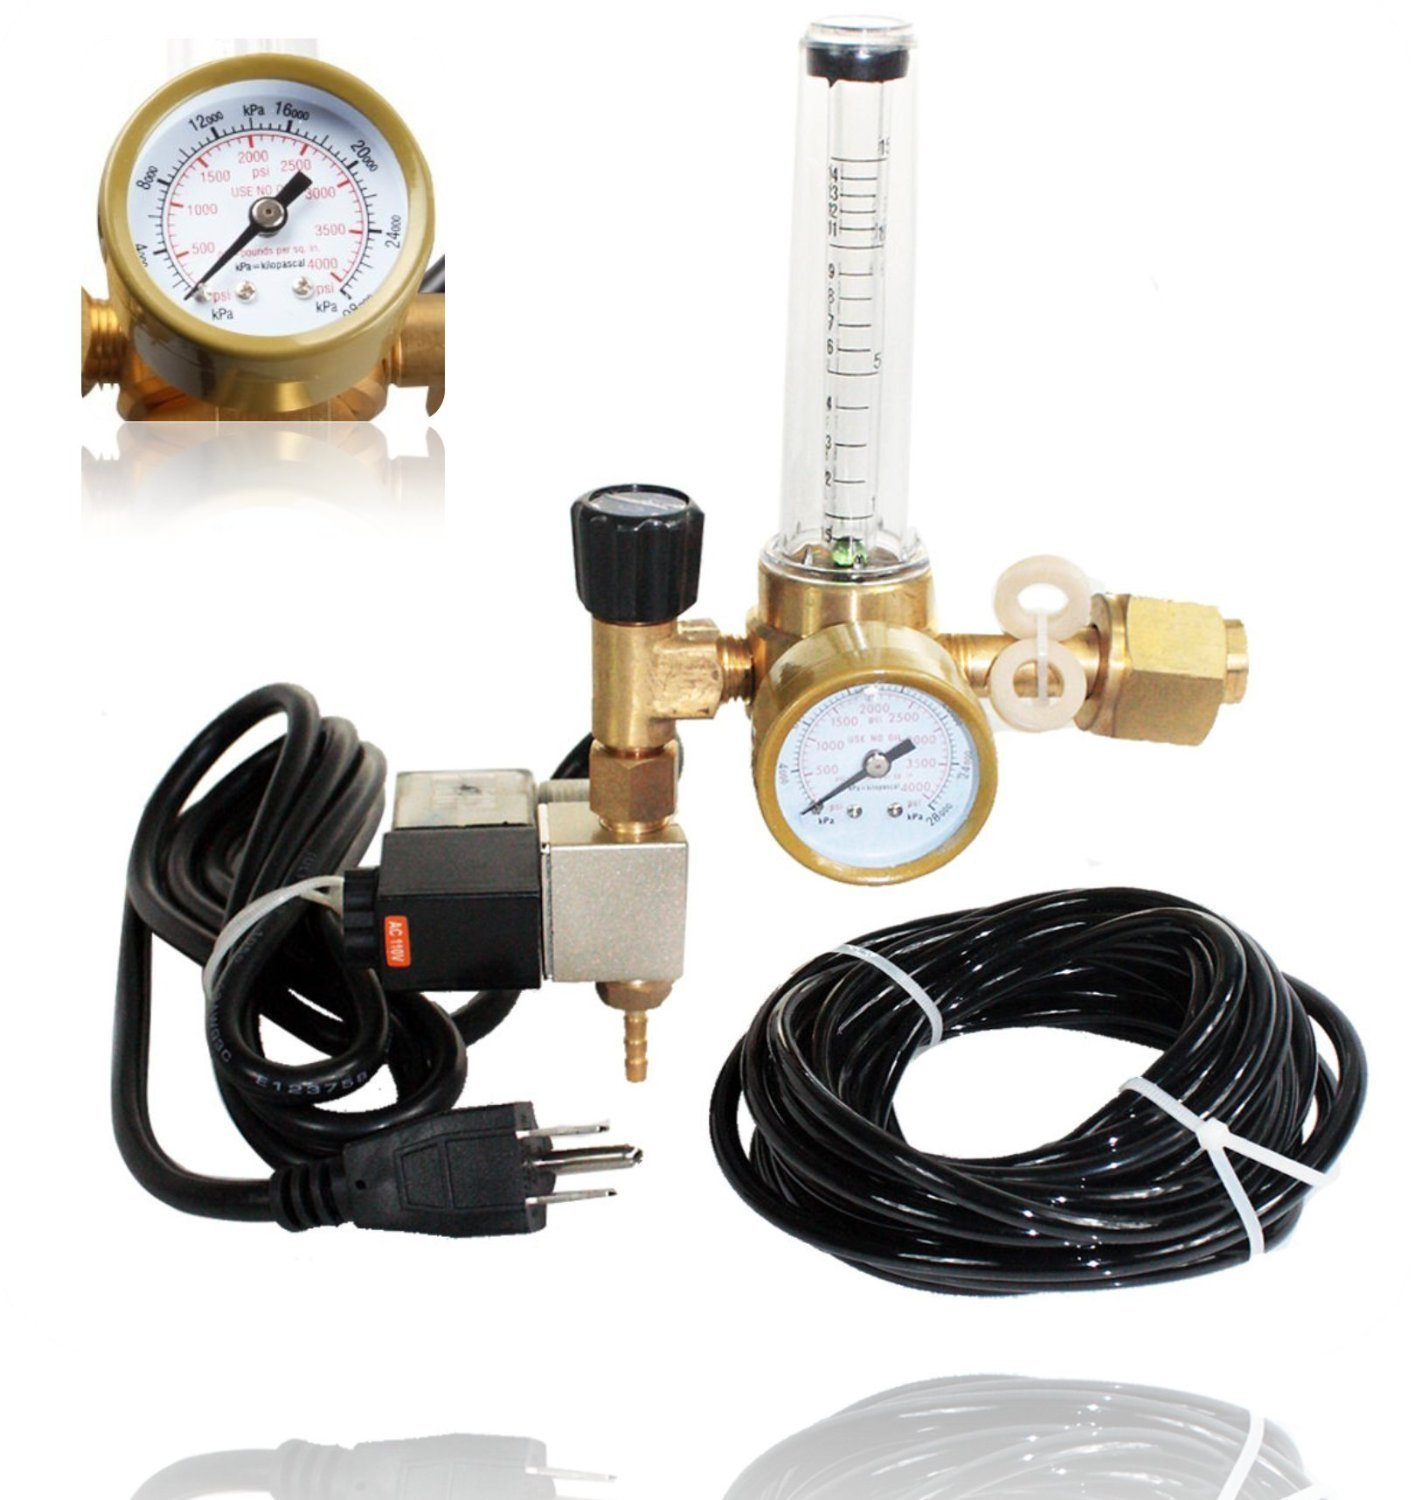 SPL Co2 Regulator Emitter System with Solenoid Valve Accurate and Easy to Adjust Flow Meter Made of High Quality Brass - Shorten up and Double Your Time for Harvesting!